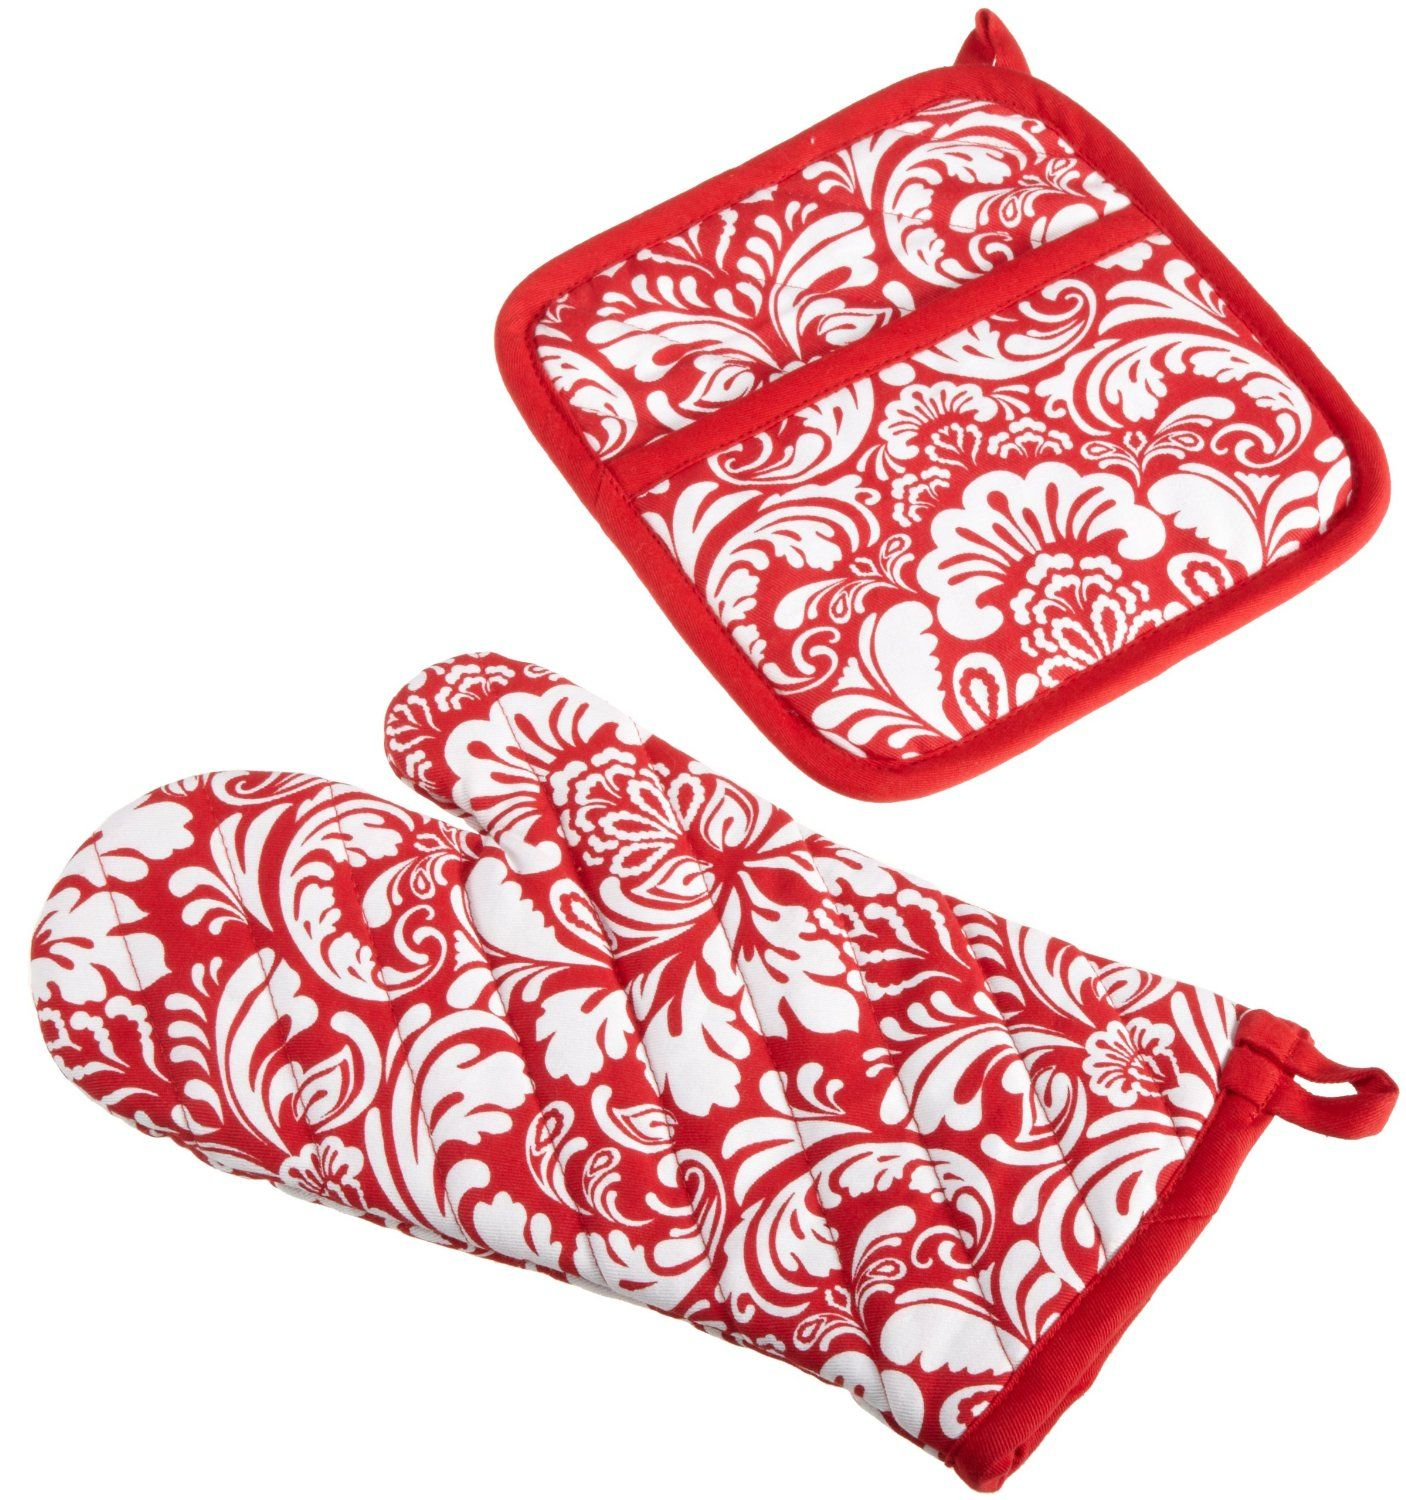 Dii 100 cotton printed printed damask oven